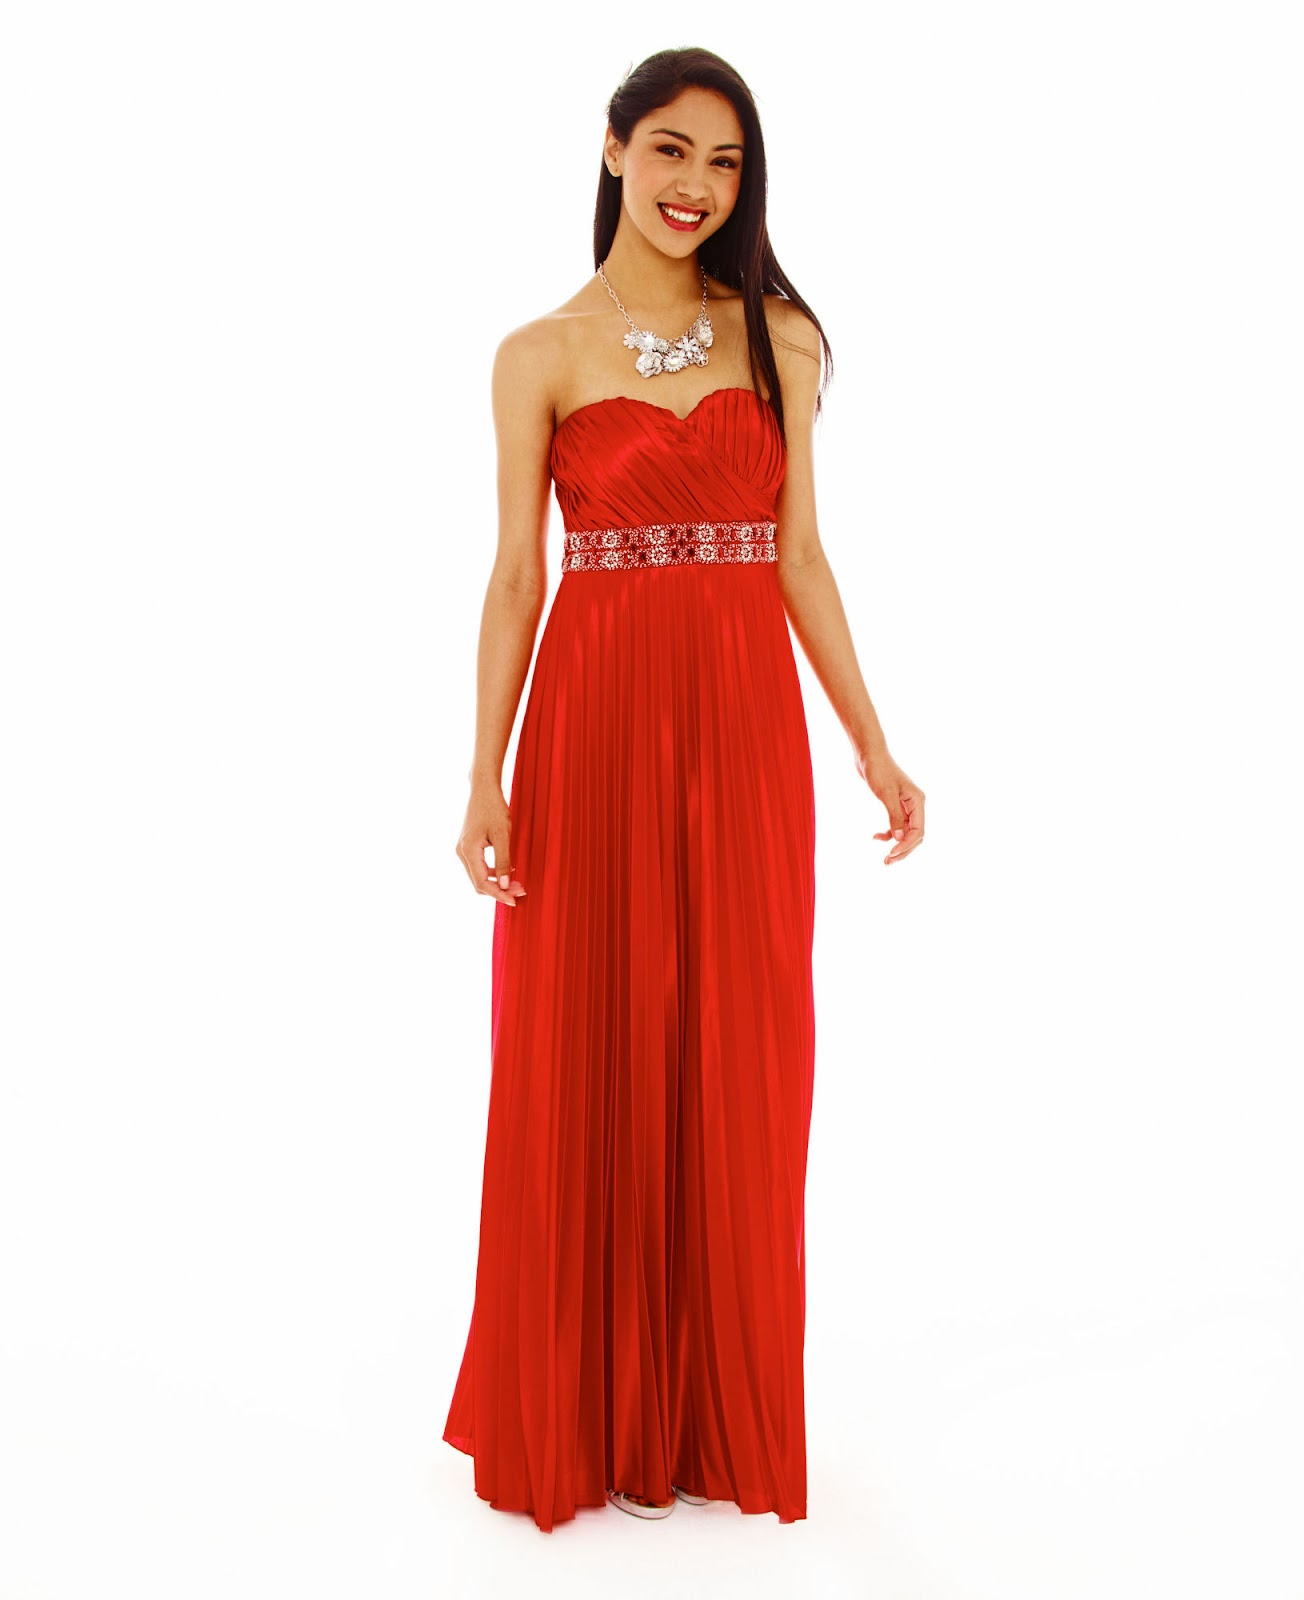 Catalog Cuties: JCPenney at the Prom, Part 12